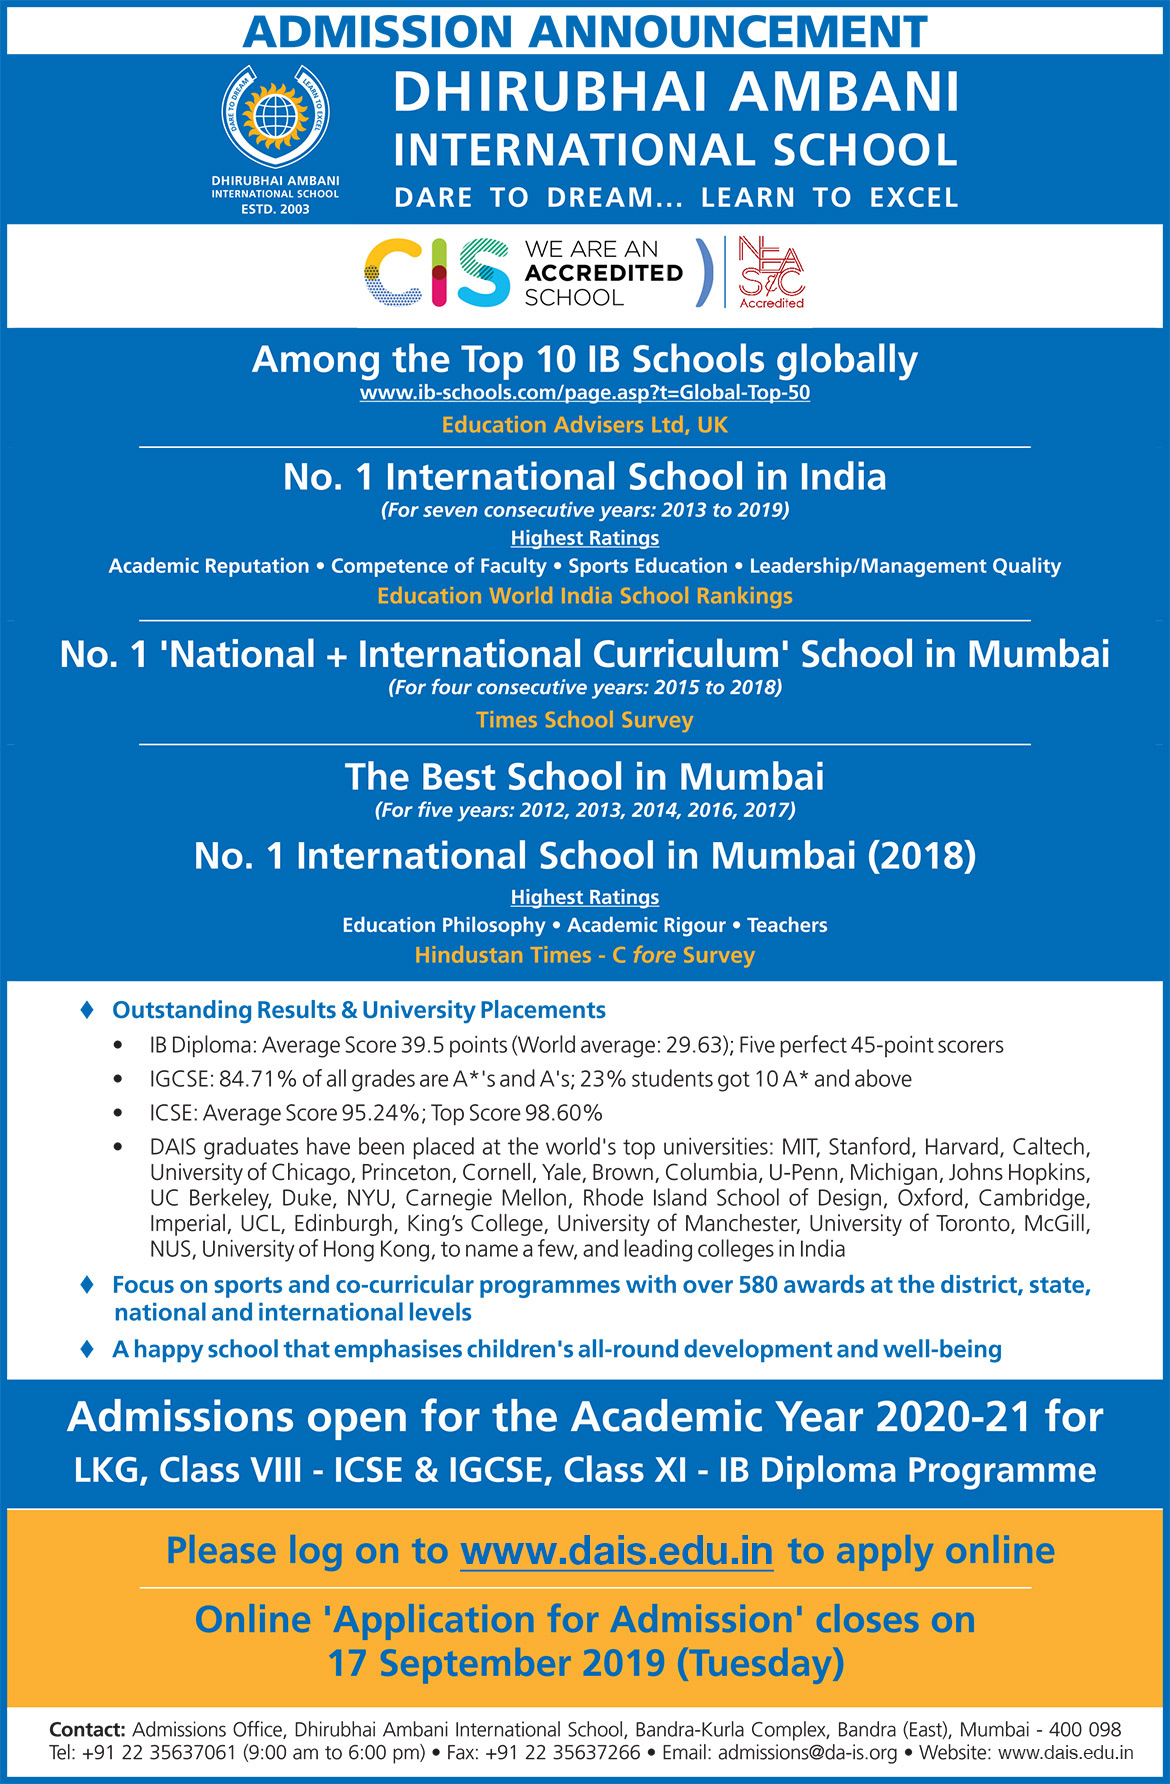 DAIS Admission - Top ICSE, IGCSE & IBDP School in Mumbai